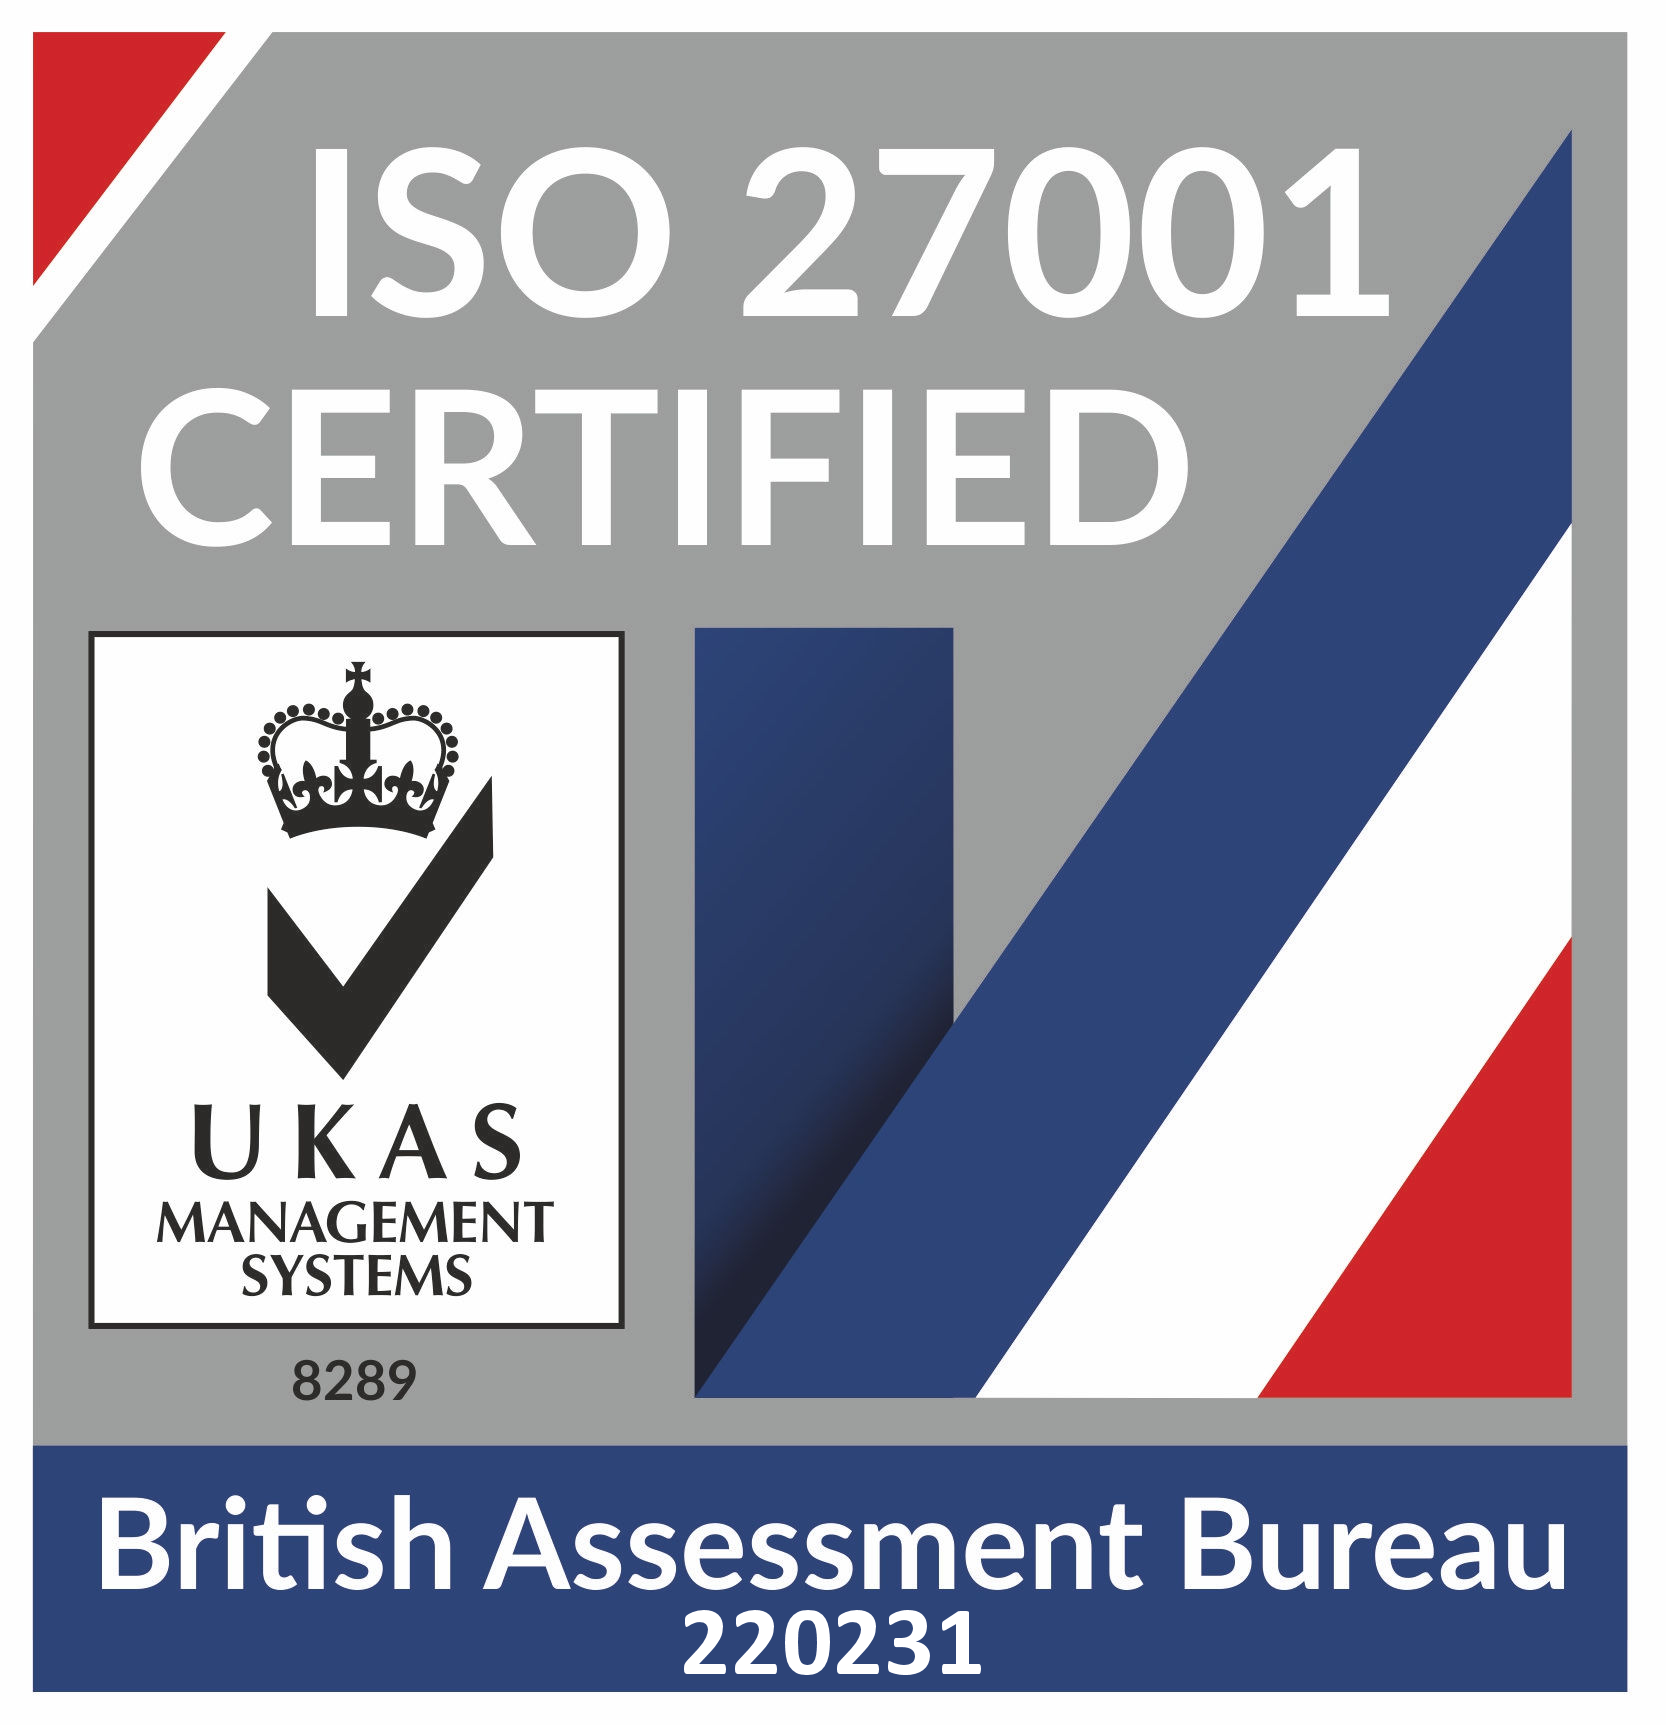 UKAS-ISO-27001-220231   Anywhere Sim.png